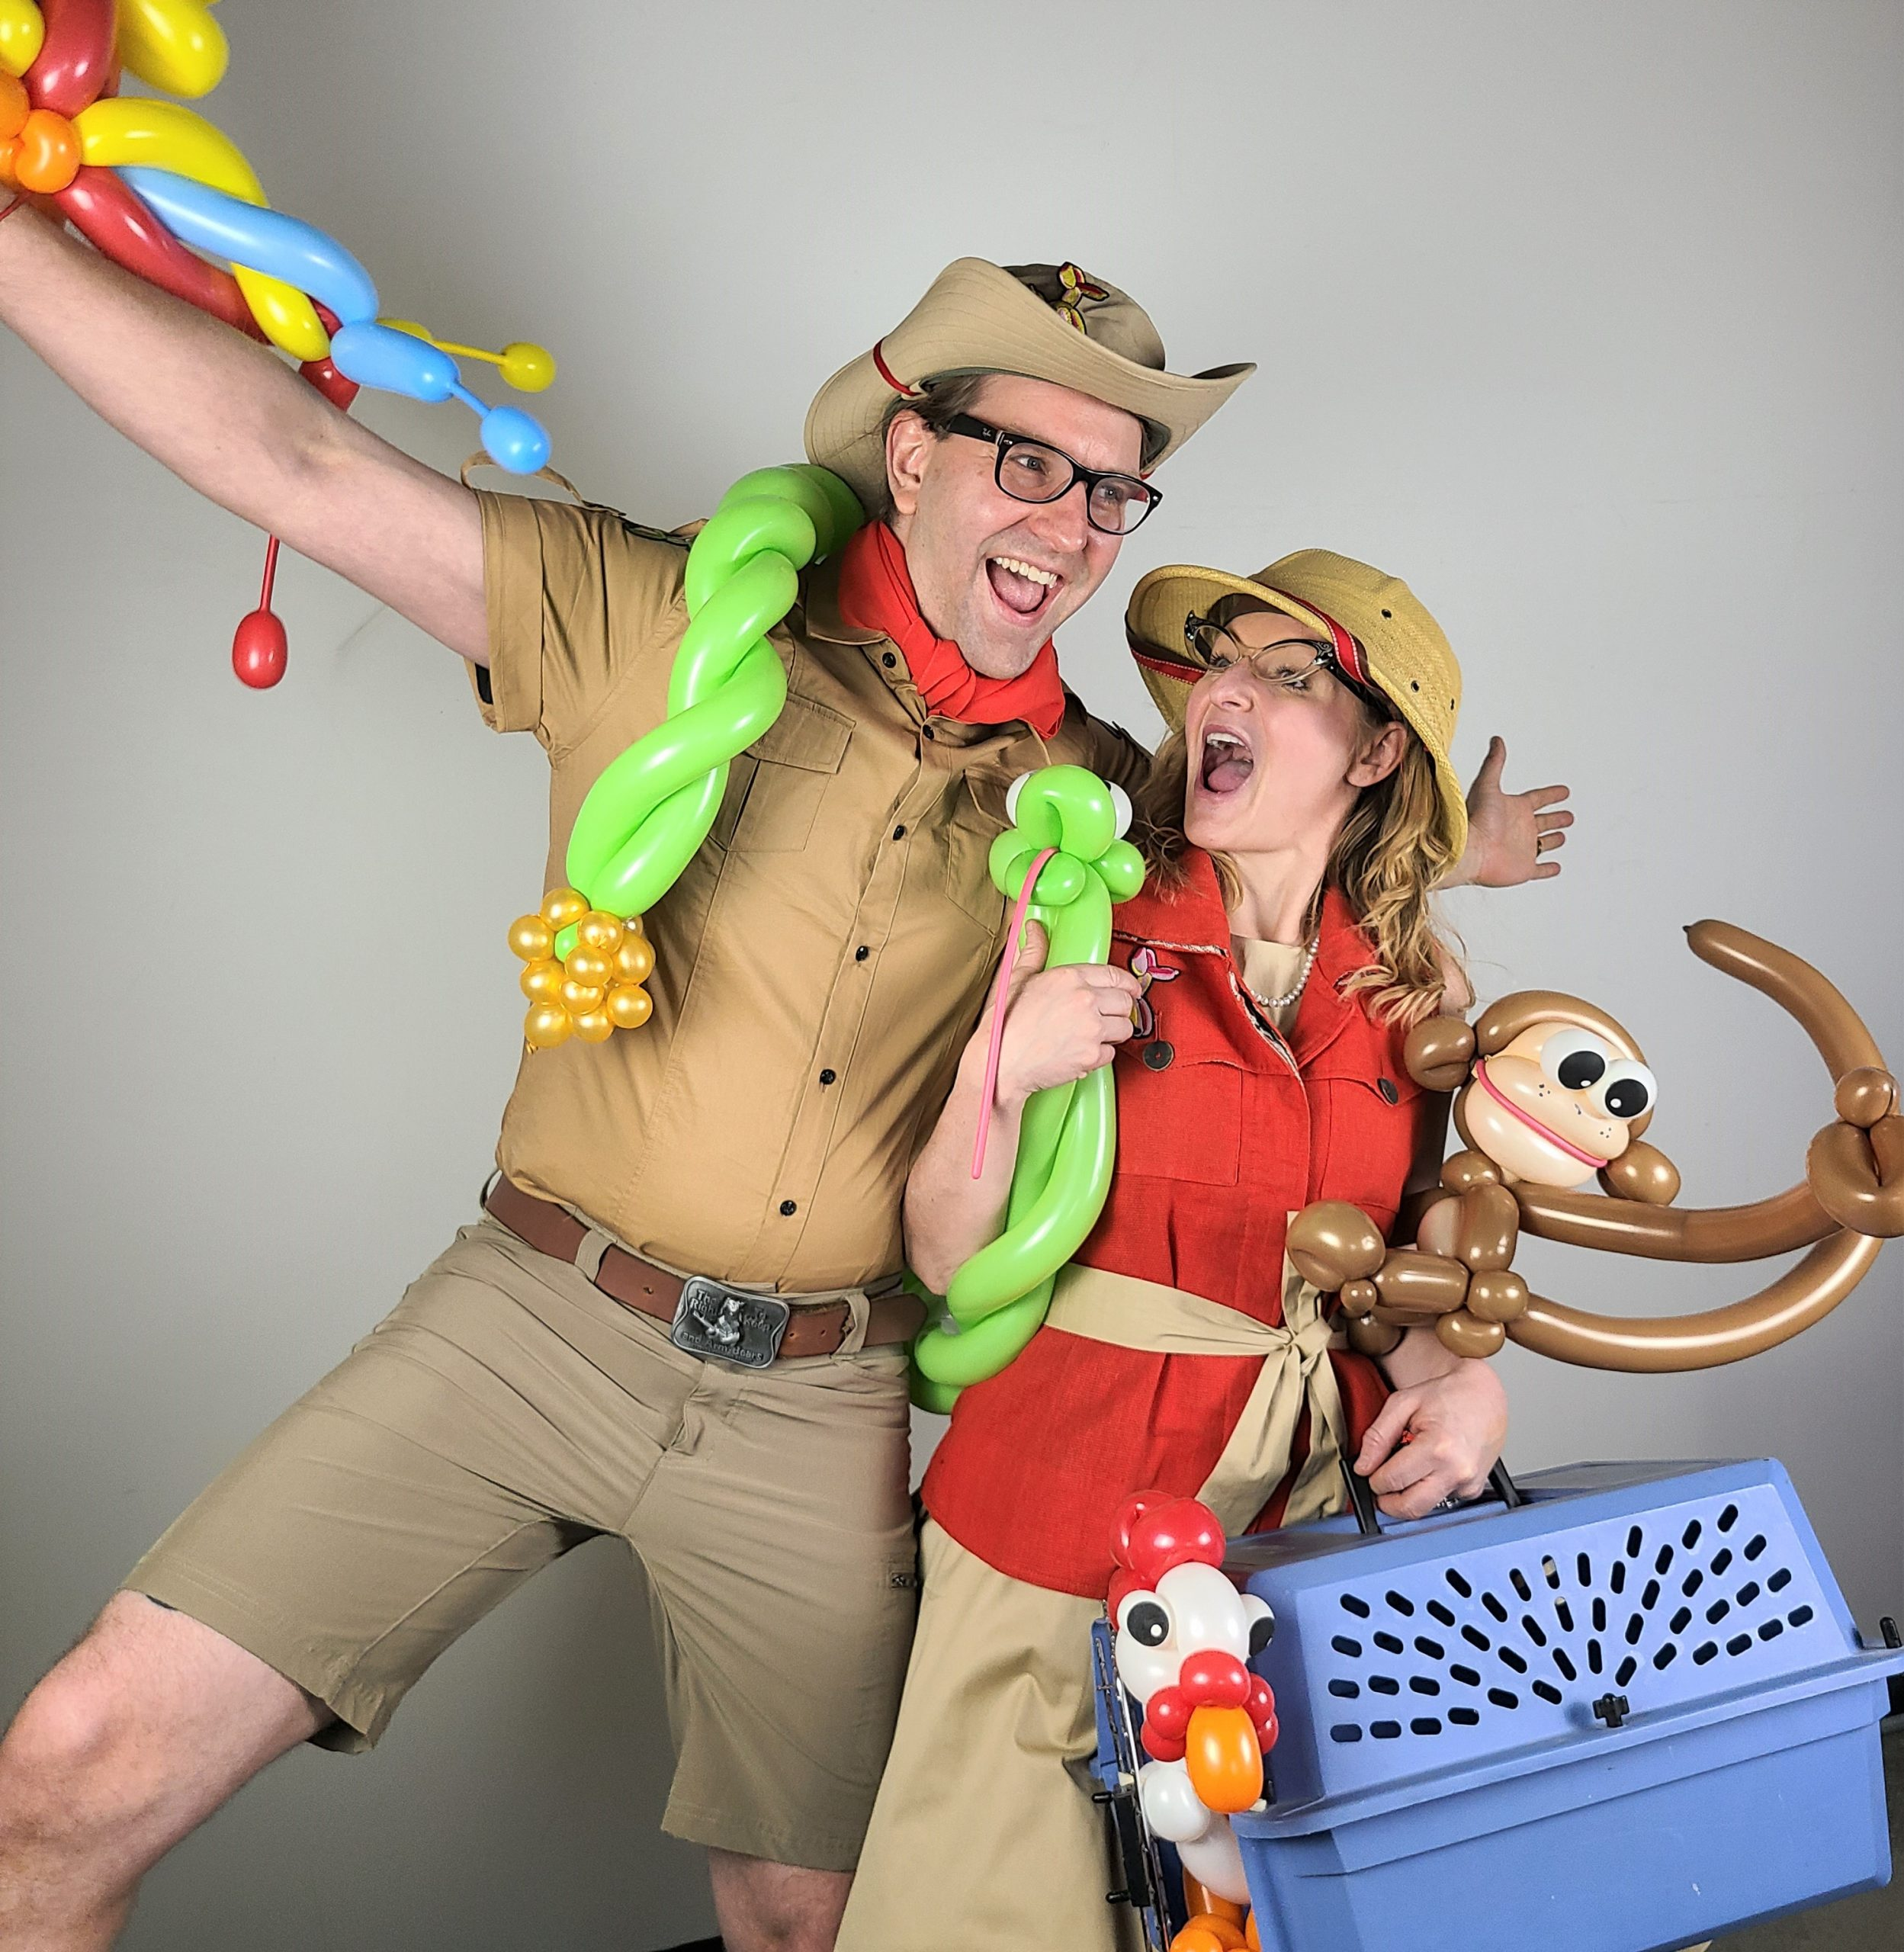 This show is serioulsy fun and silly! Nebraska Kansas Missour and Iowa Libraries and Schools LOVE our animals.